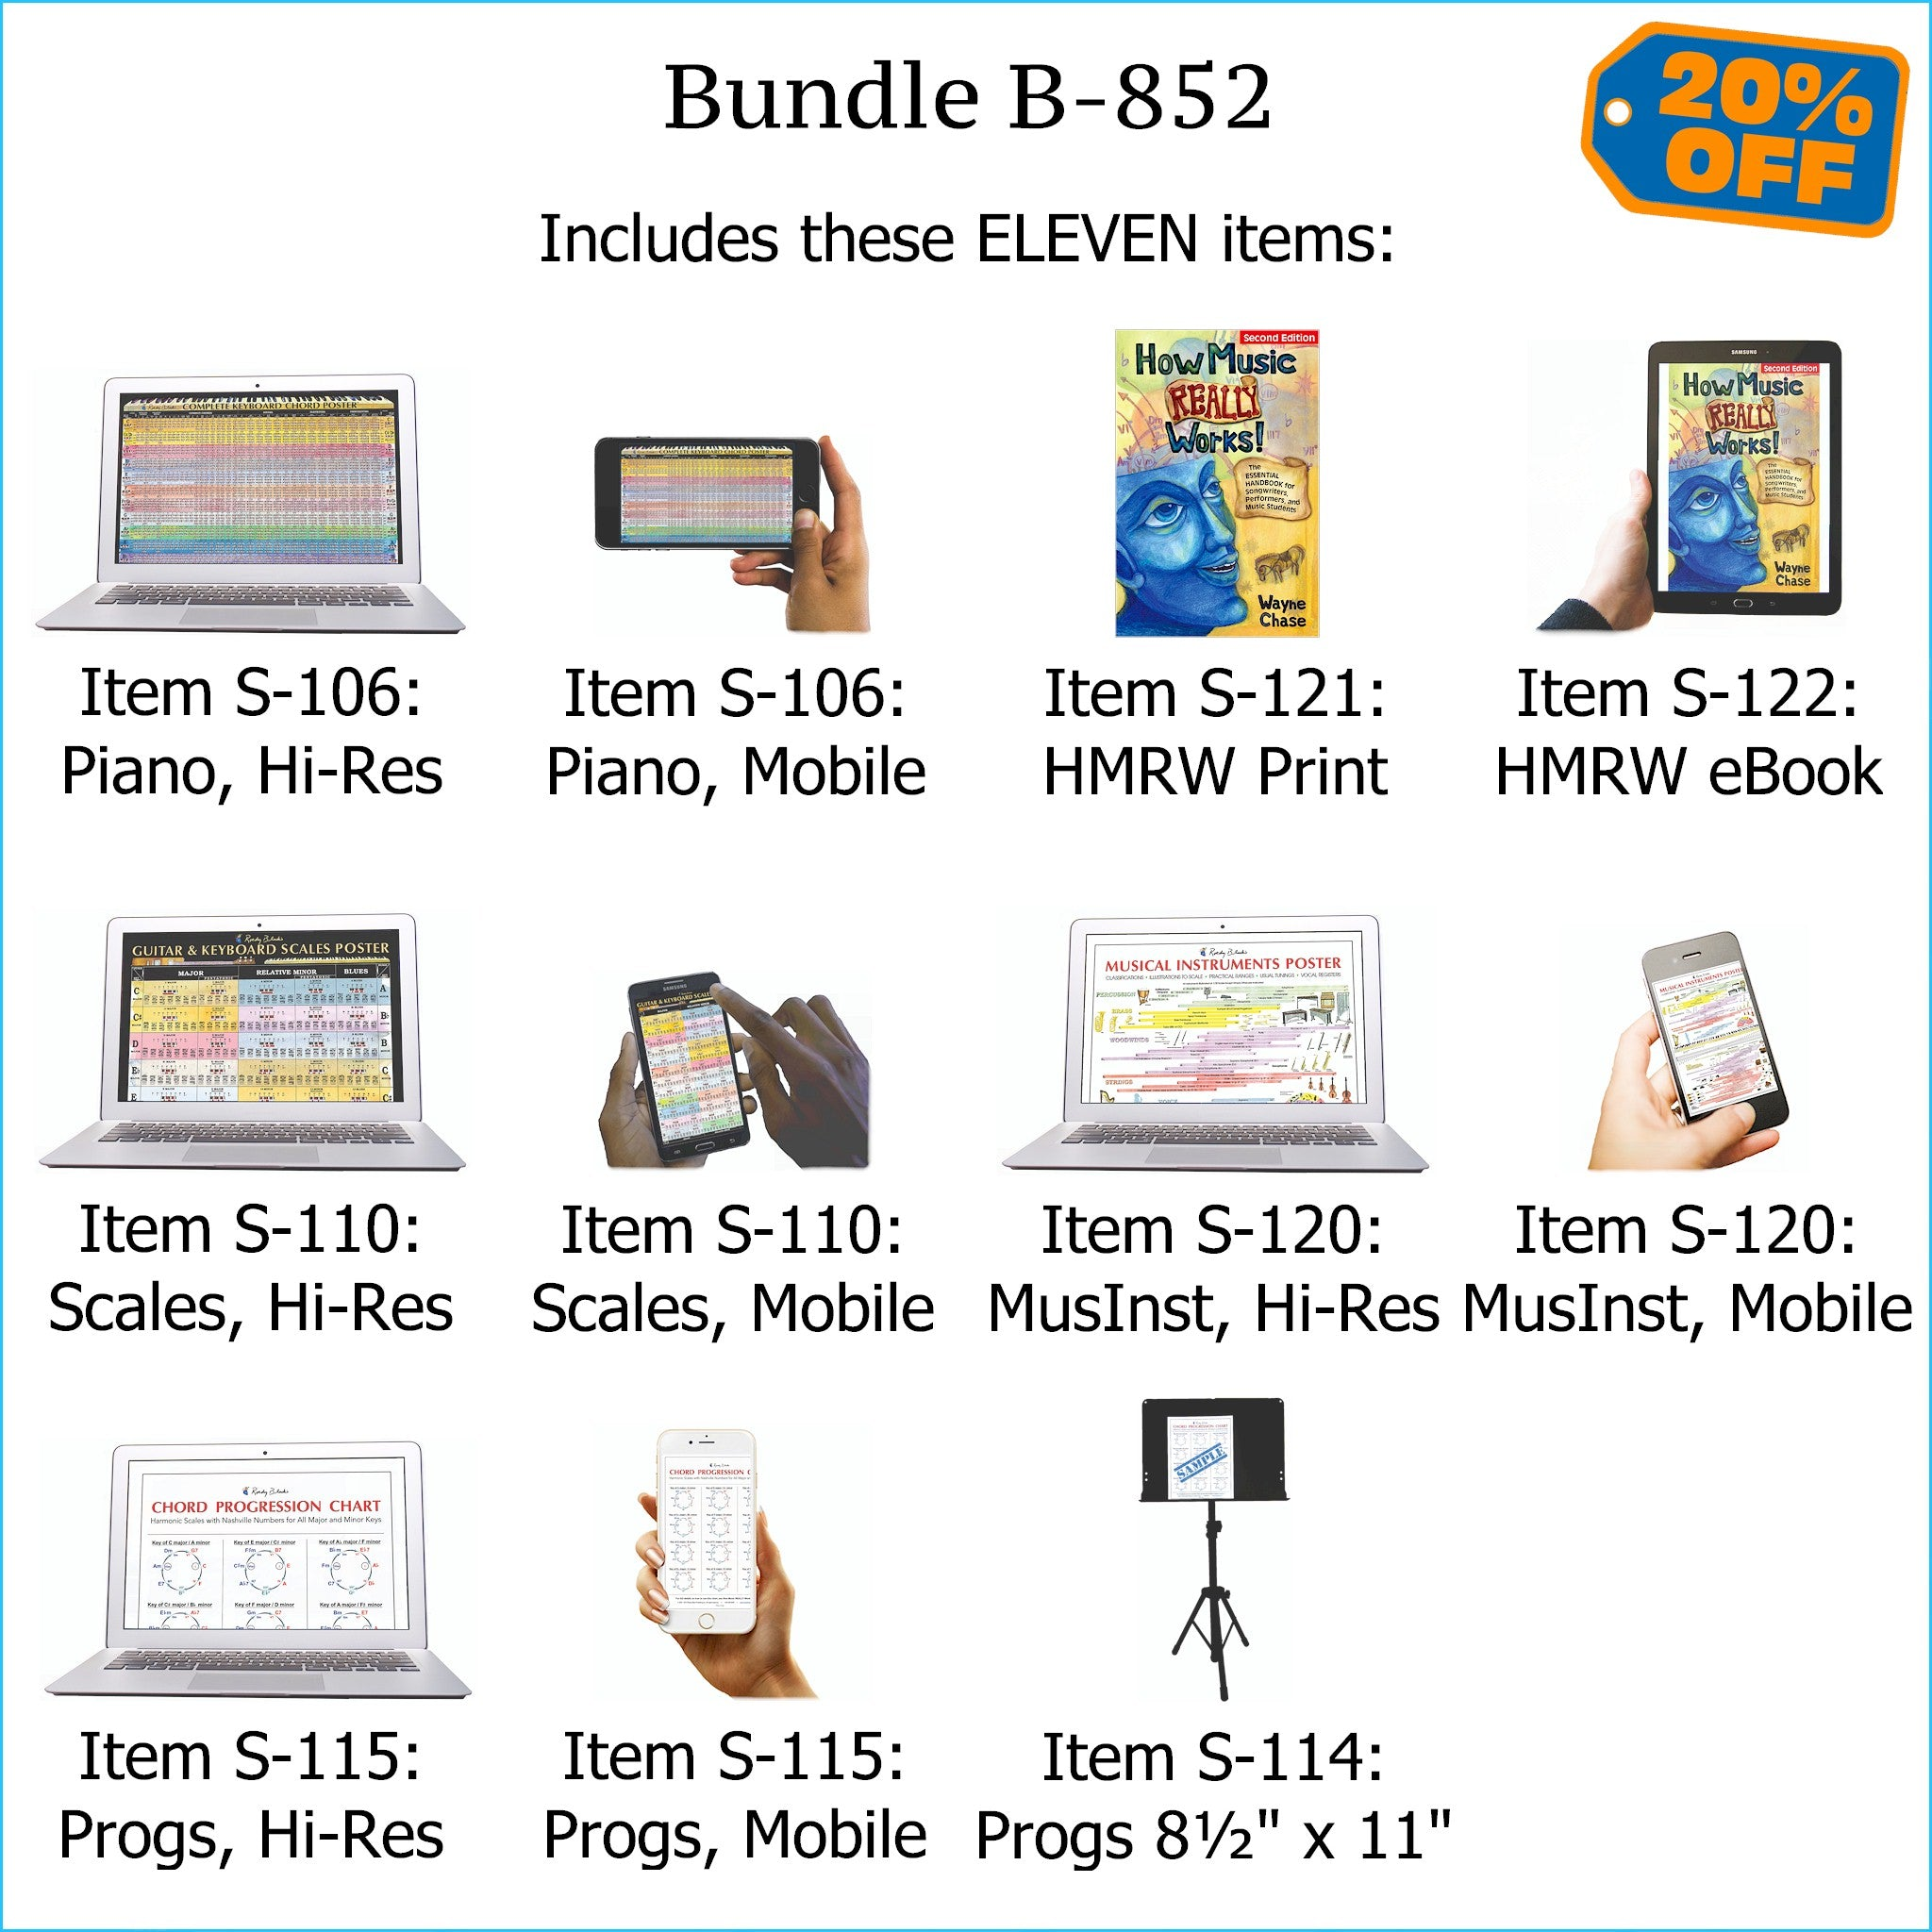 Bundle B-852: How Music REALLY Works! Print Book + E-Book, E-Posters and Printable E-Books - Keyboard Chords, Scales, Chord Progressions. FREE SHIPPING – USA & Canada.